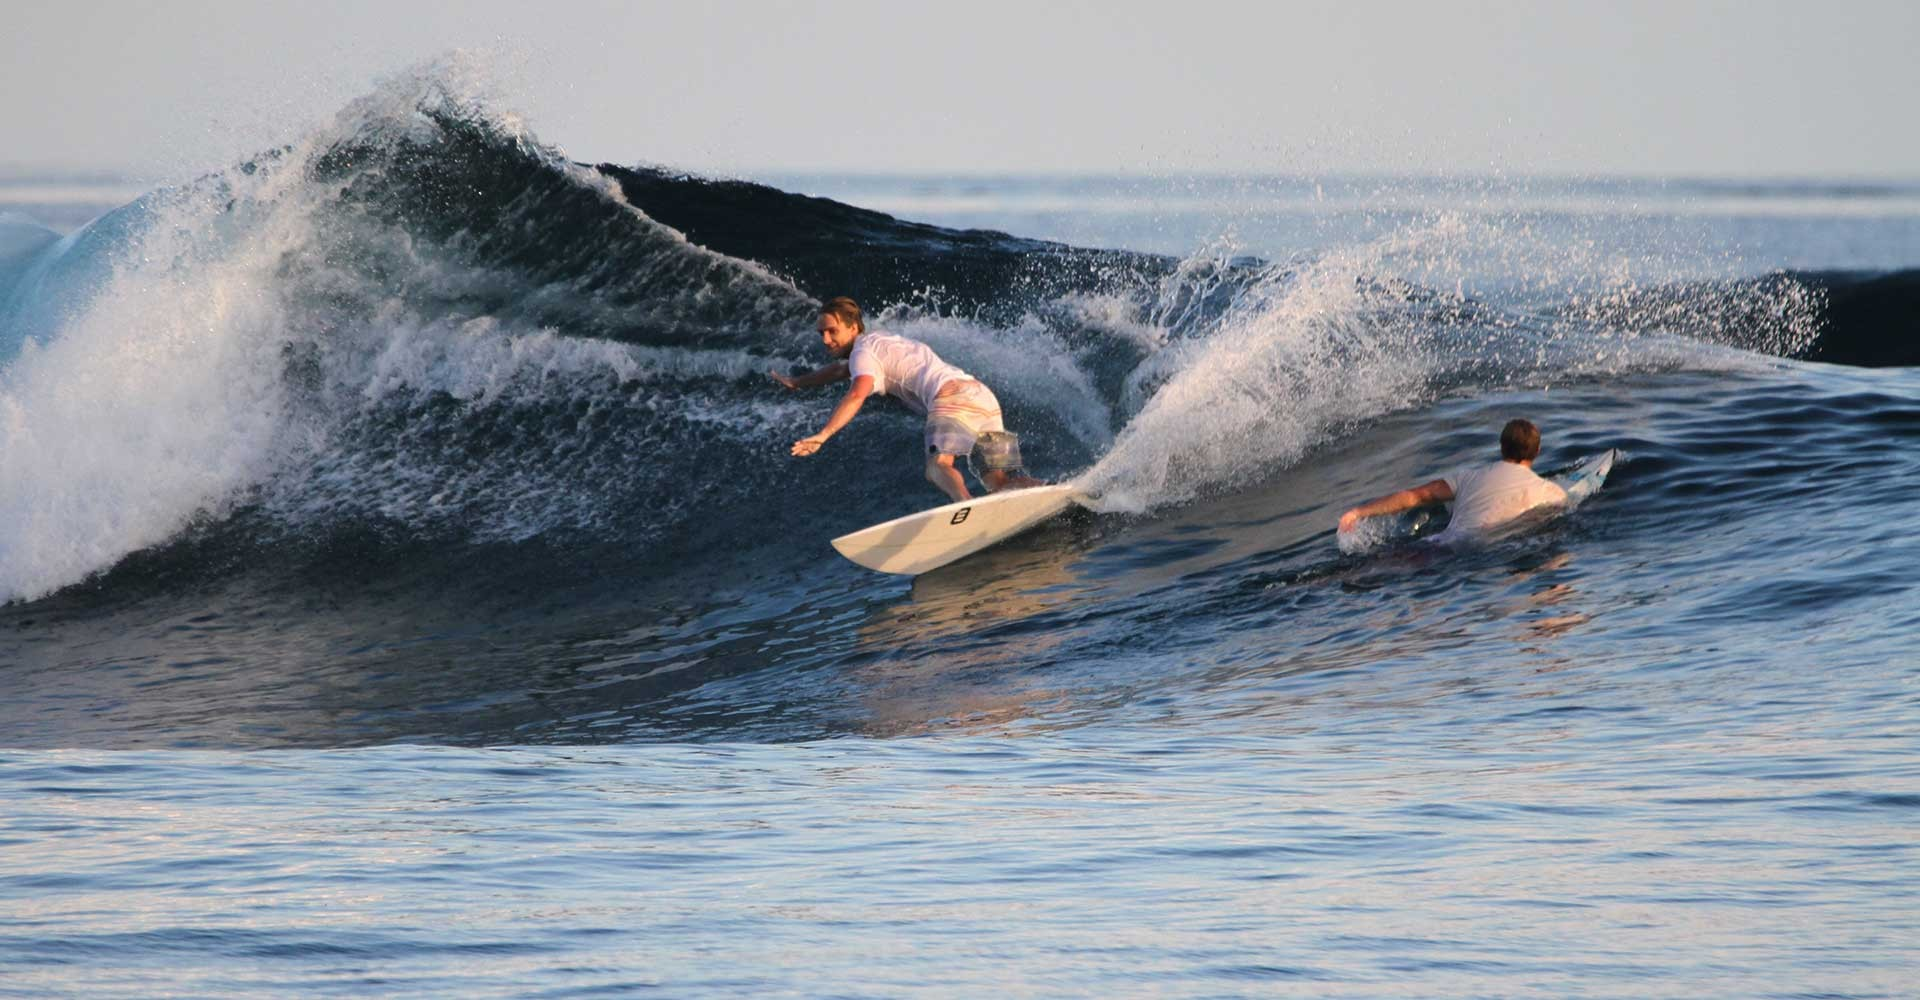 surfing, surfboard, cutback, surf, board, custom, wave, maldives, prancha de surf